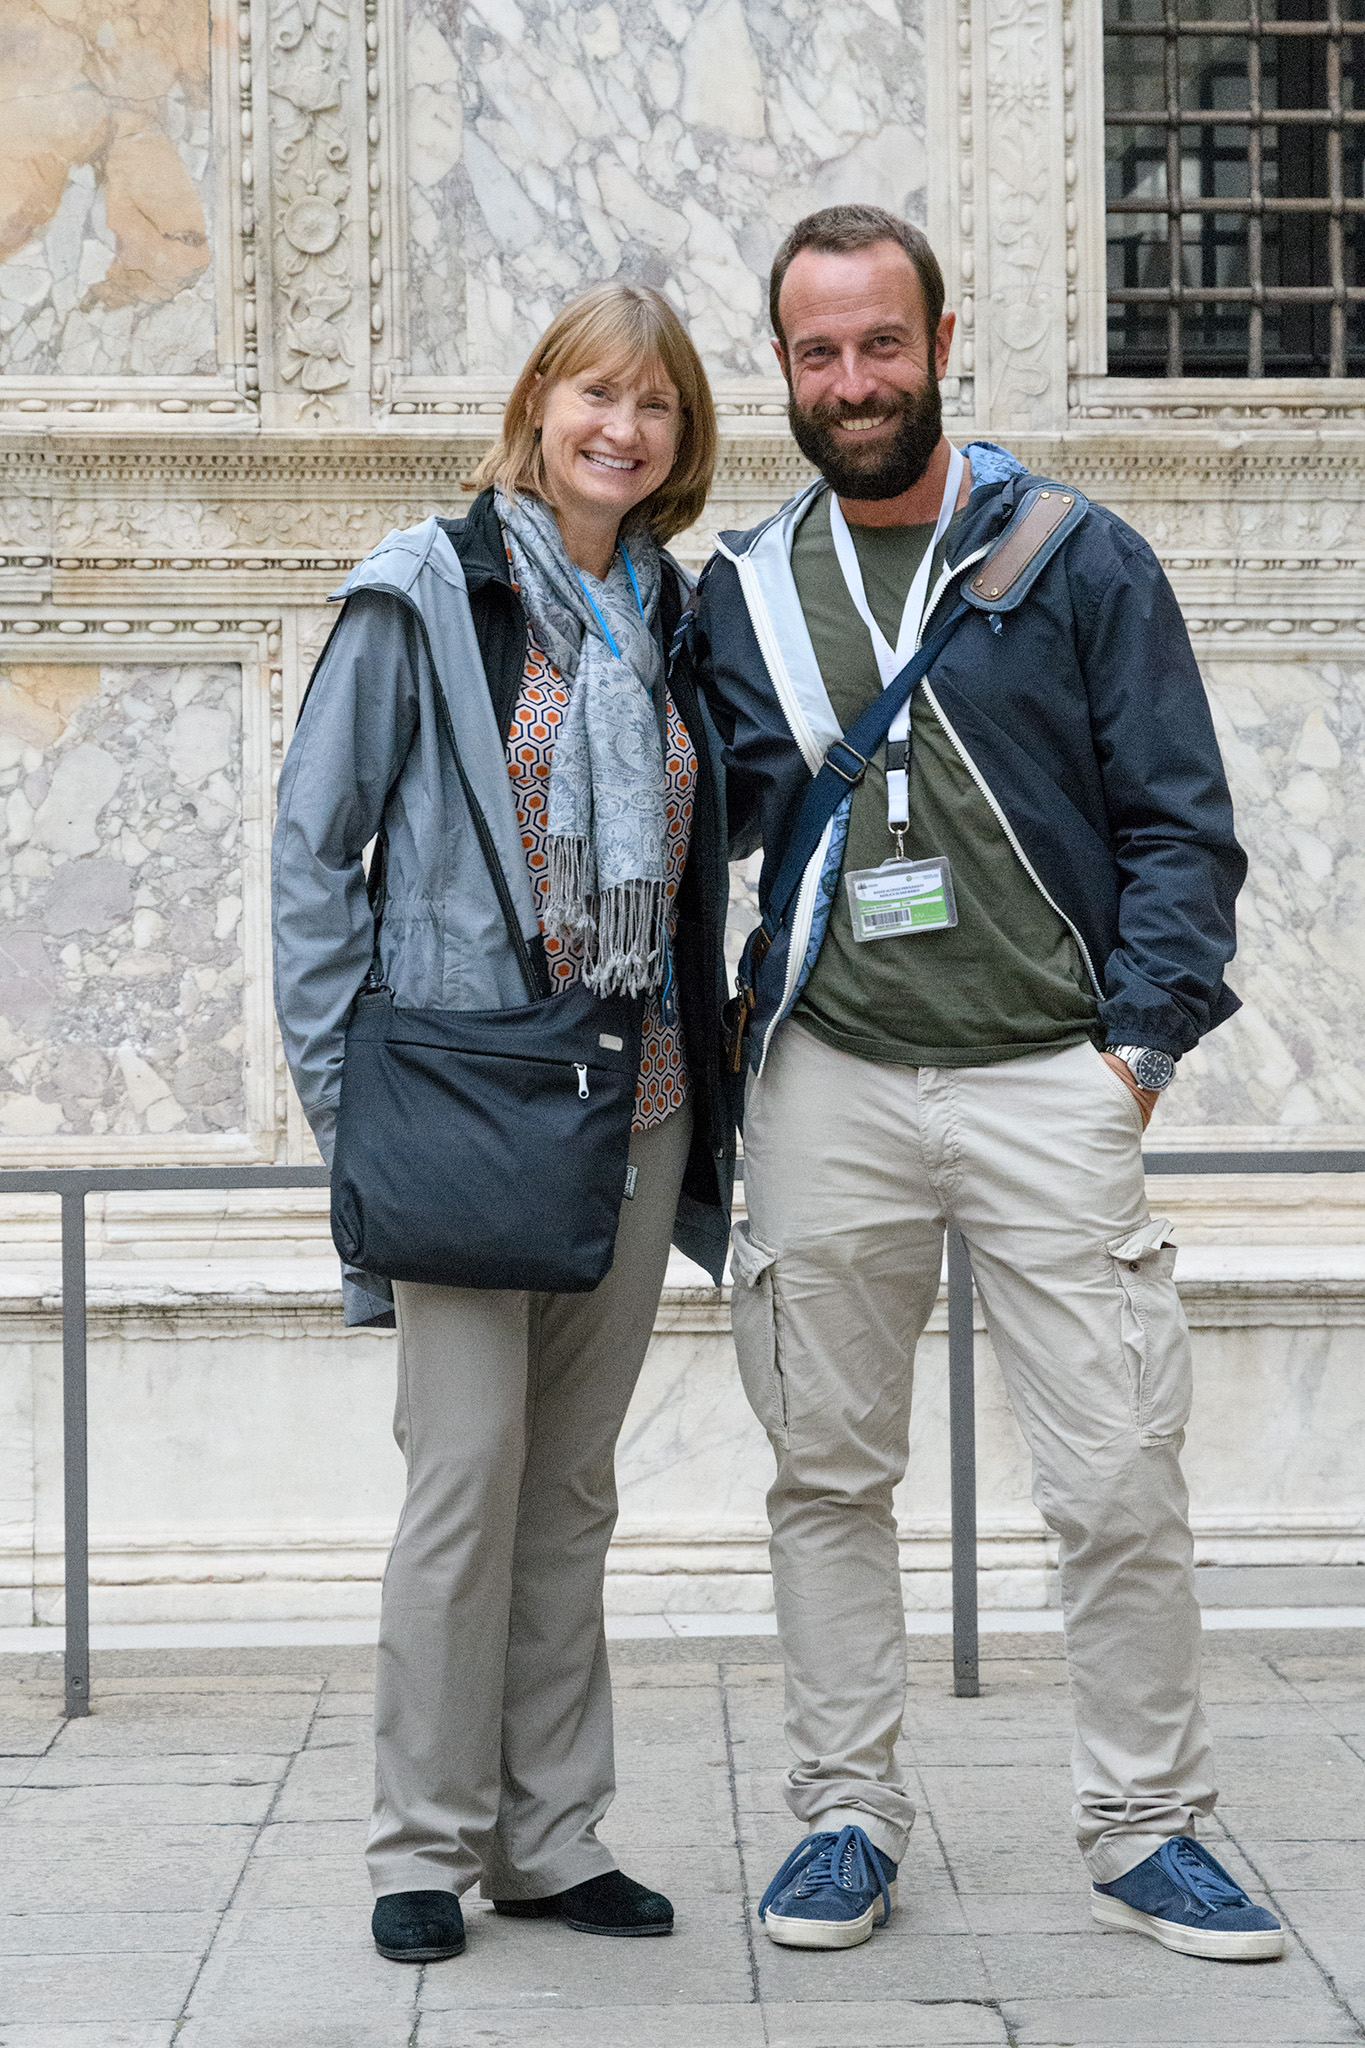 Our guide, Andrea Bressan